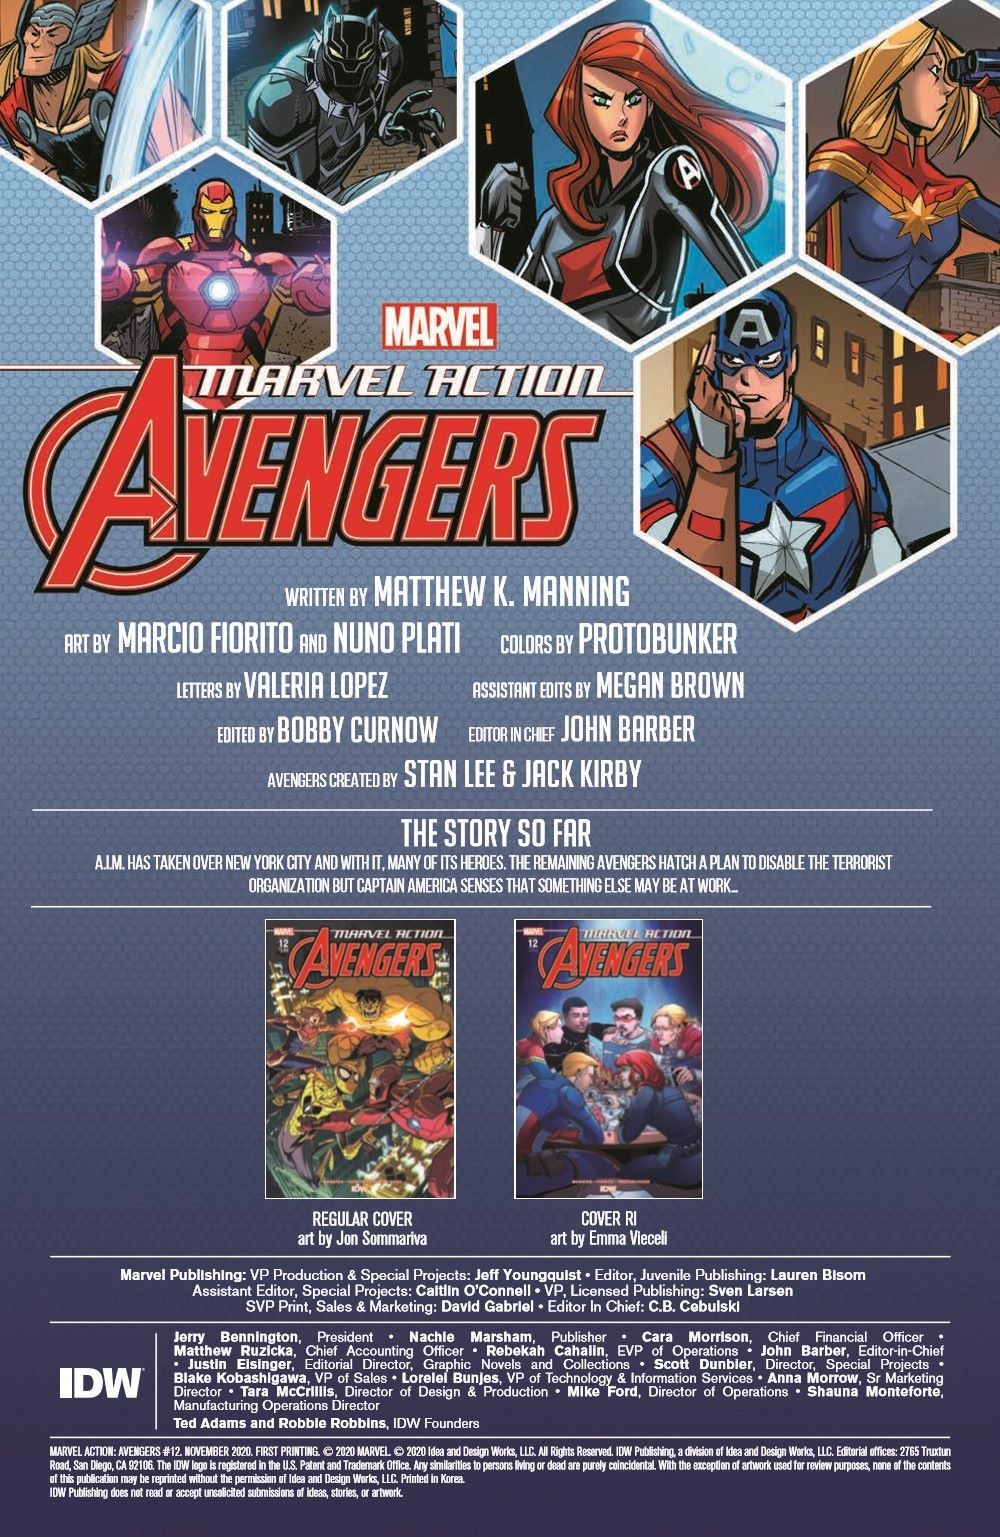 Marvel_Avengers_12_pr-2 ComicList Previews: MARVEL ACTION AVENGERS #12